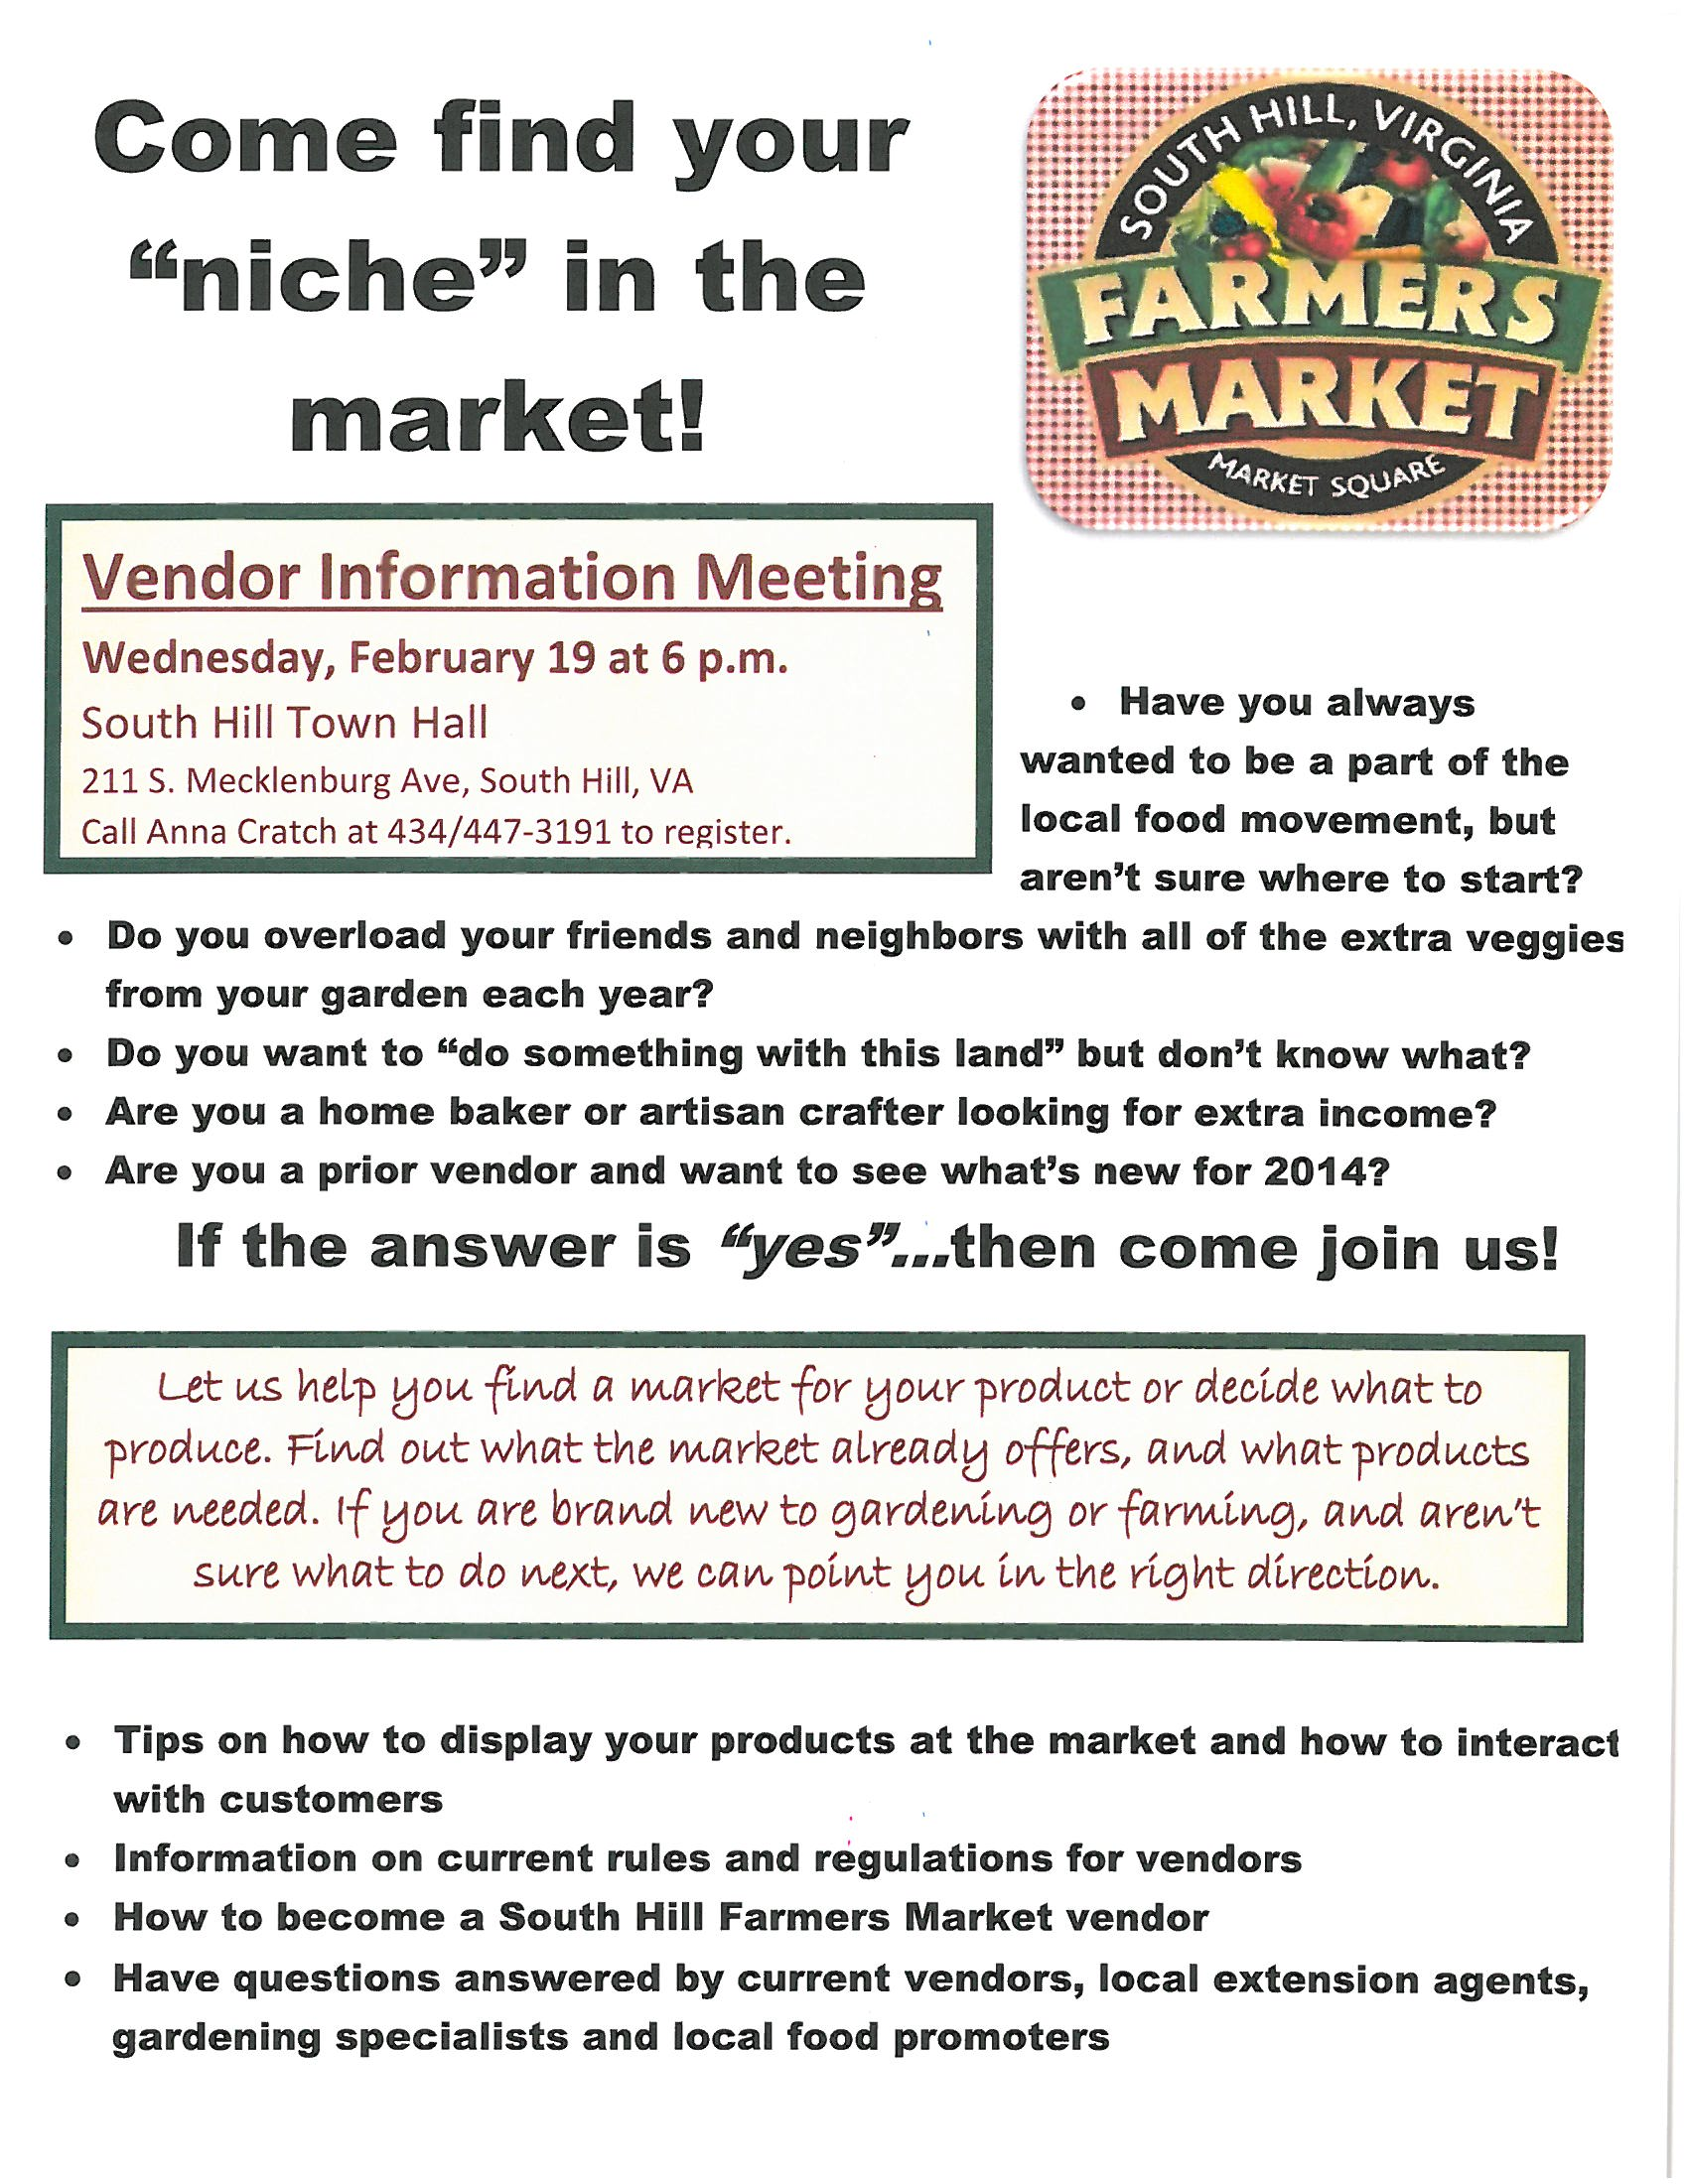 South Hill Farmers Market Meeting